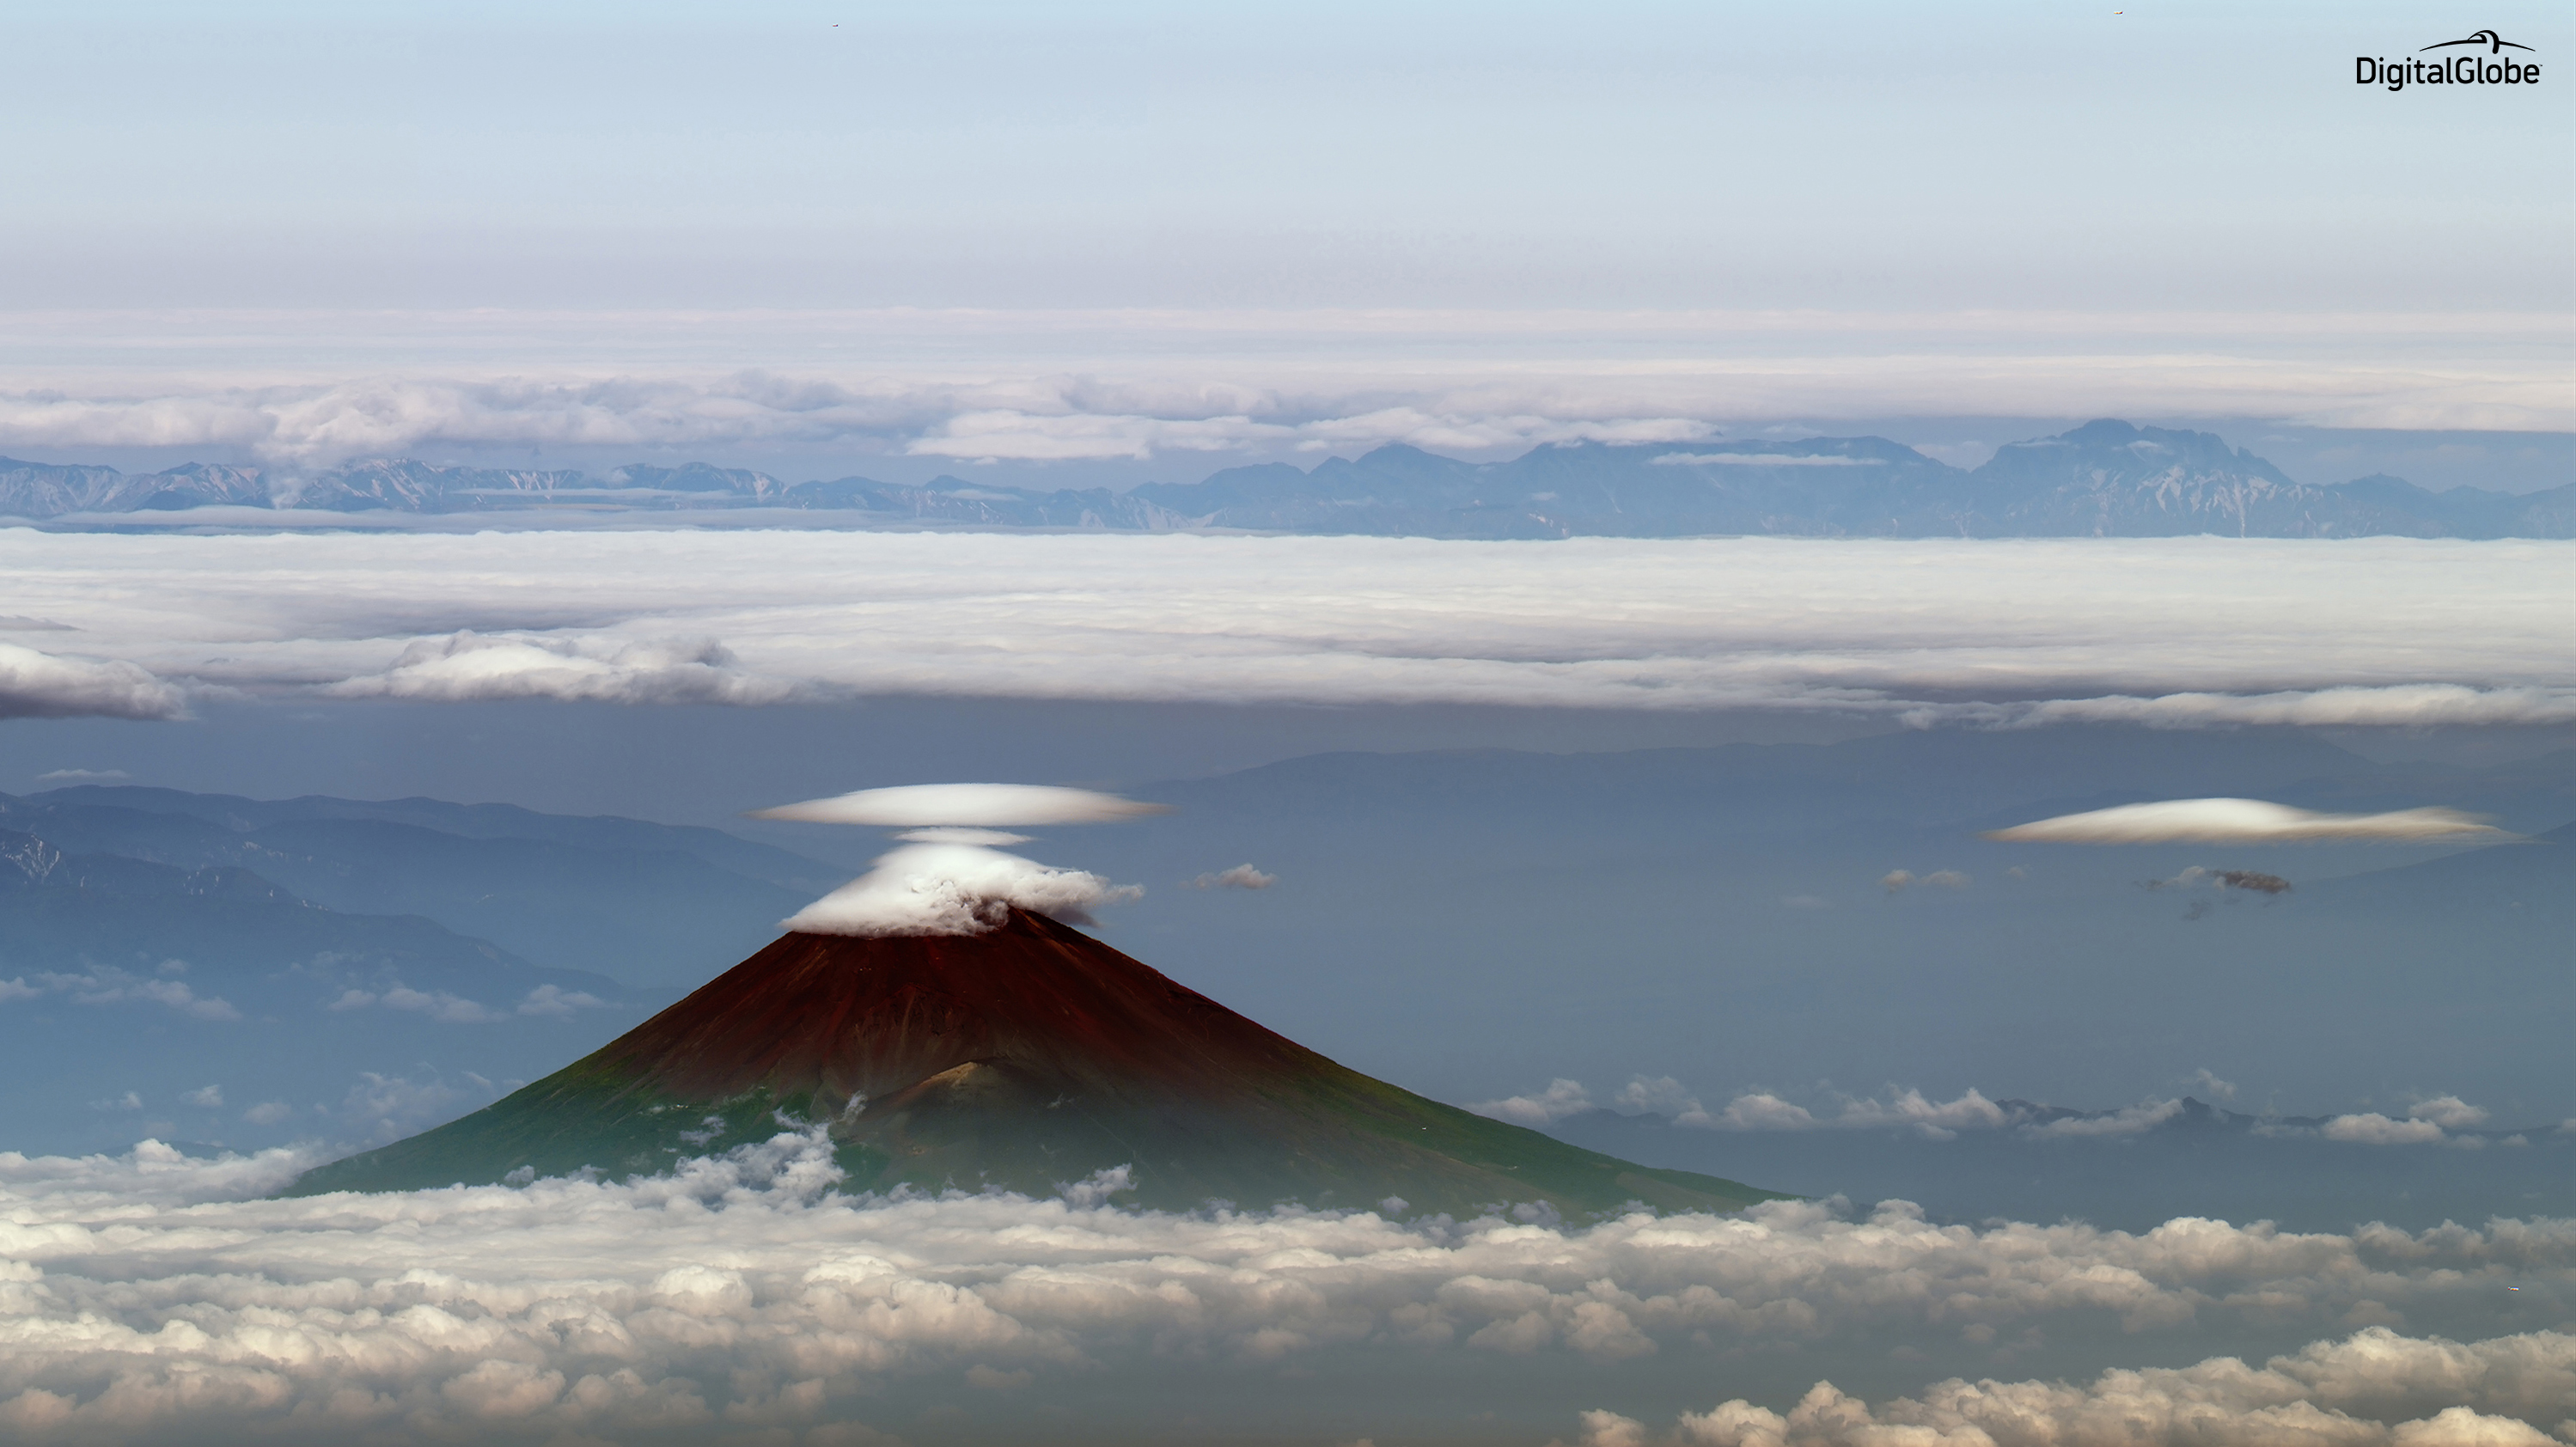 Mt. Fuji, Japan - captured with the satellite just 3 degrees above the horizon